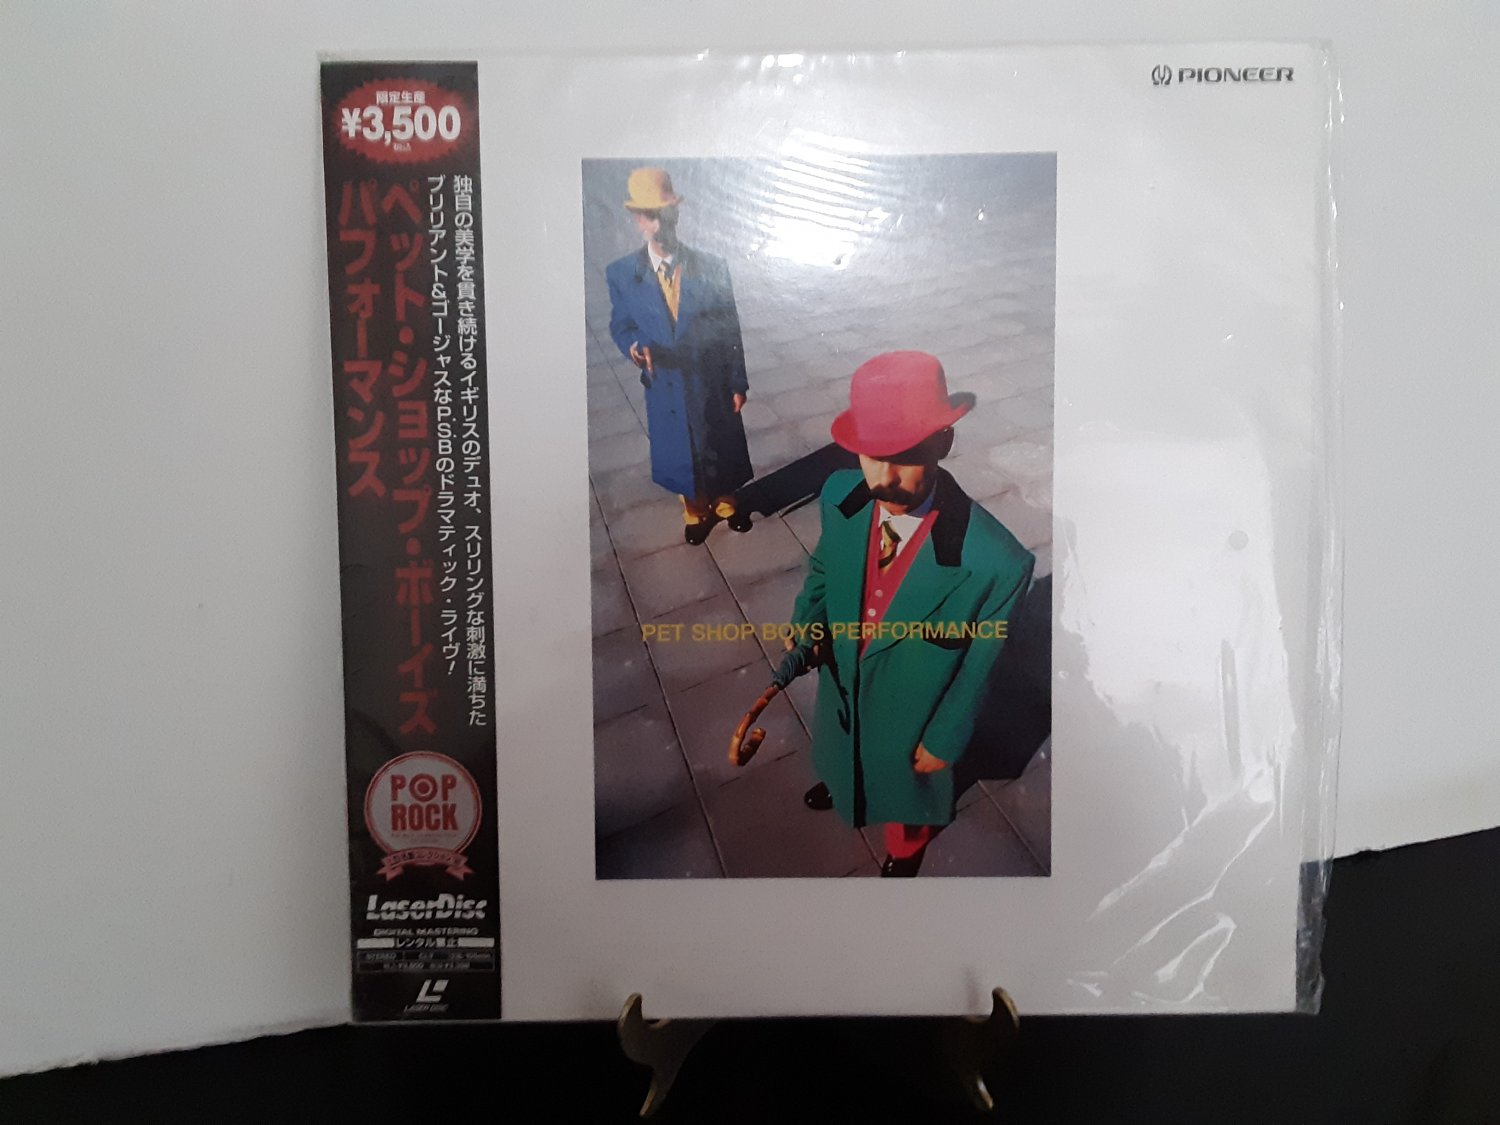 Pet Shop Boys - Performance - Japan Pressing - Circa 1993 - LASERDISC